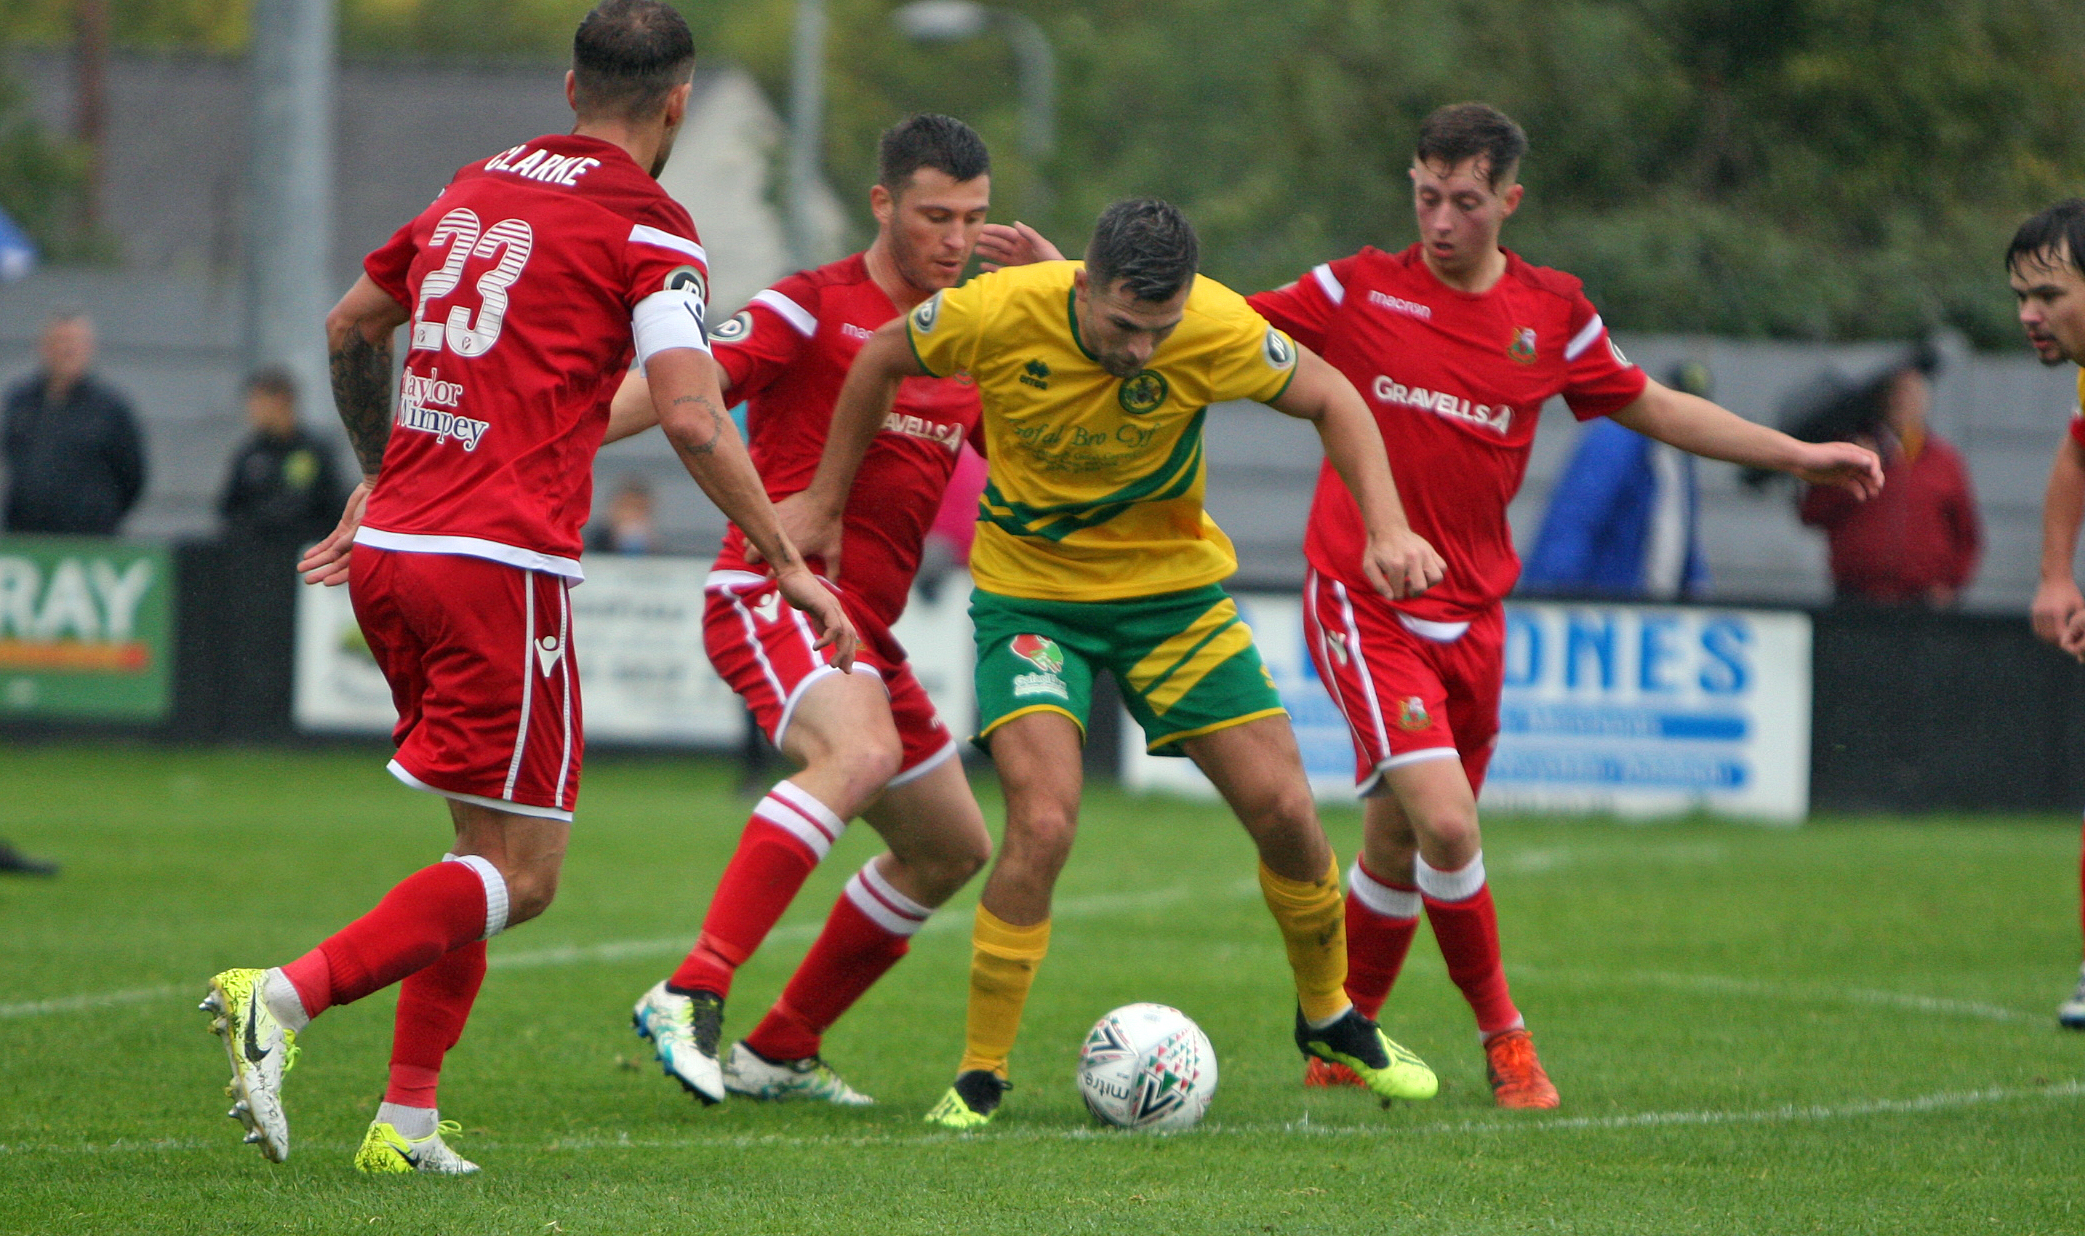 Caernarfon Town's Danny Brookwell in action against Llanelli Town (Photo: Richard Birch)